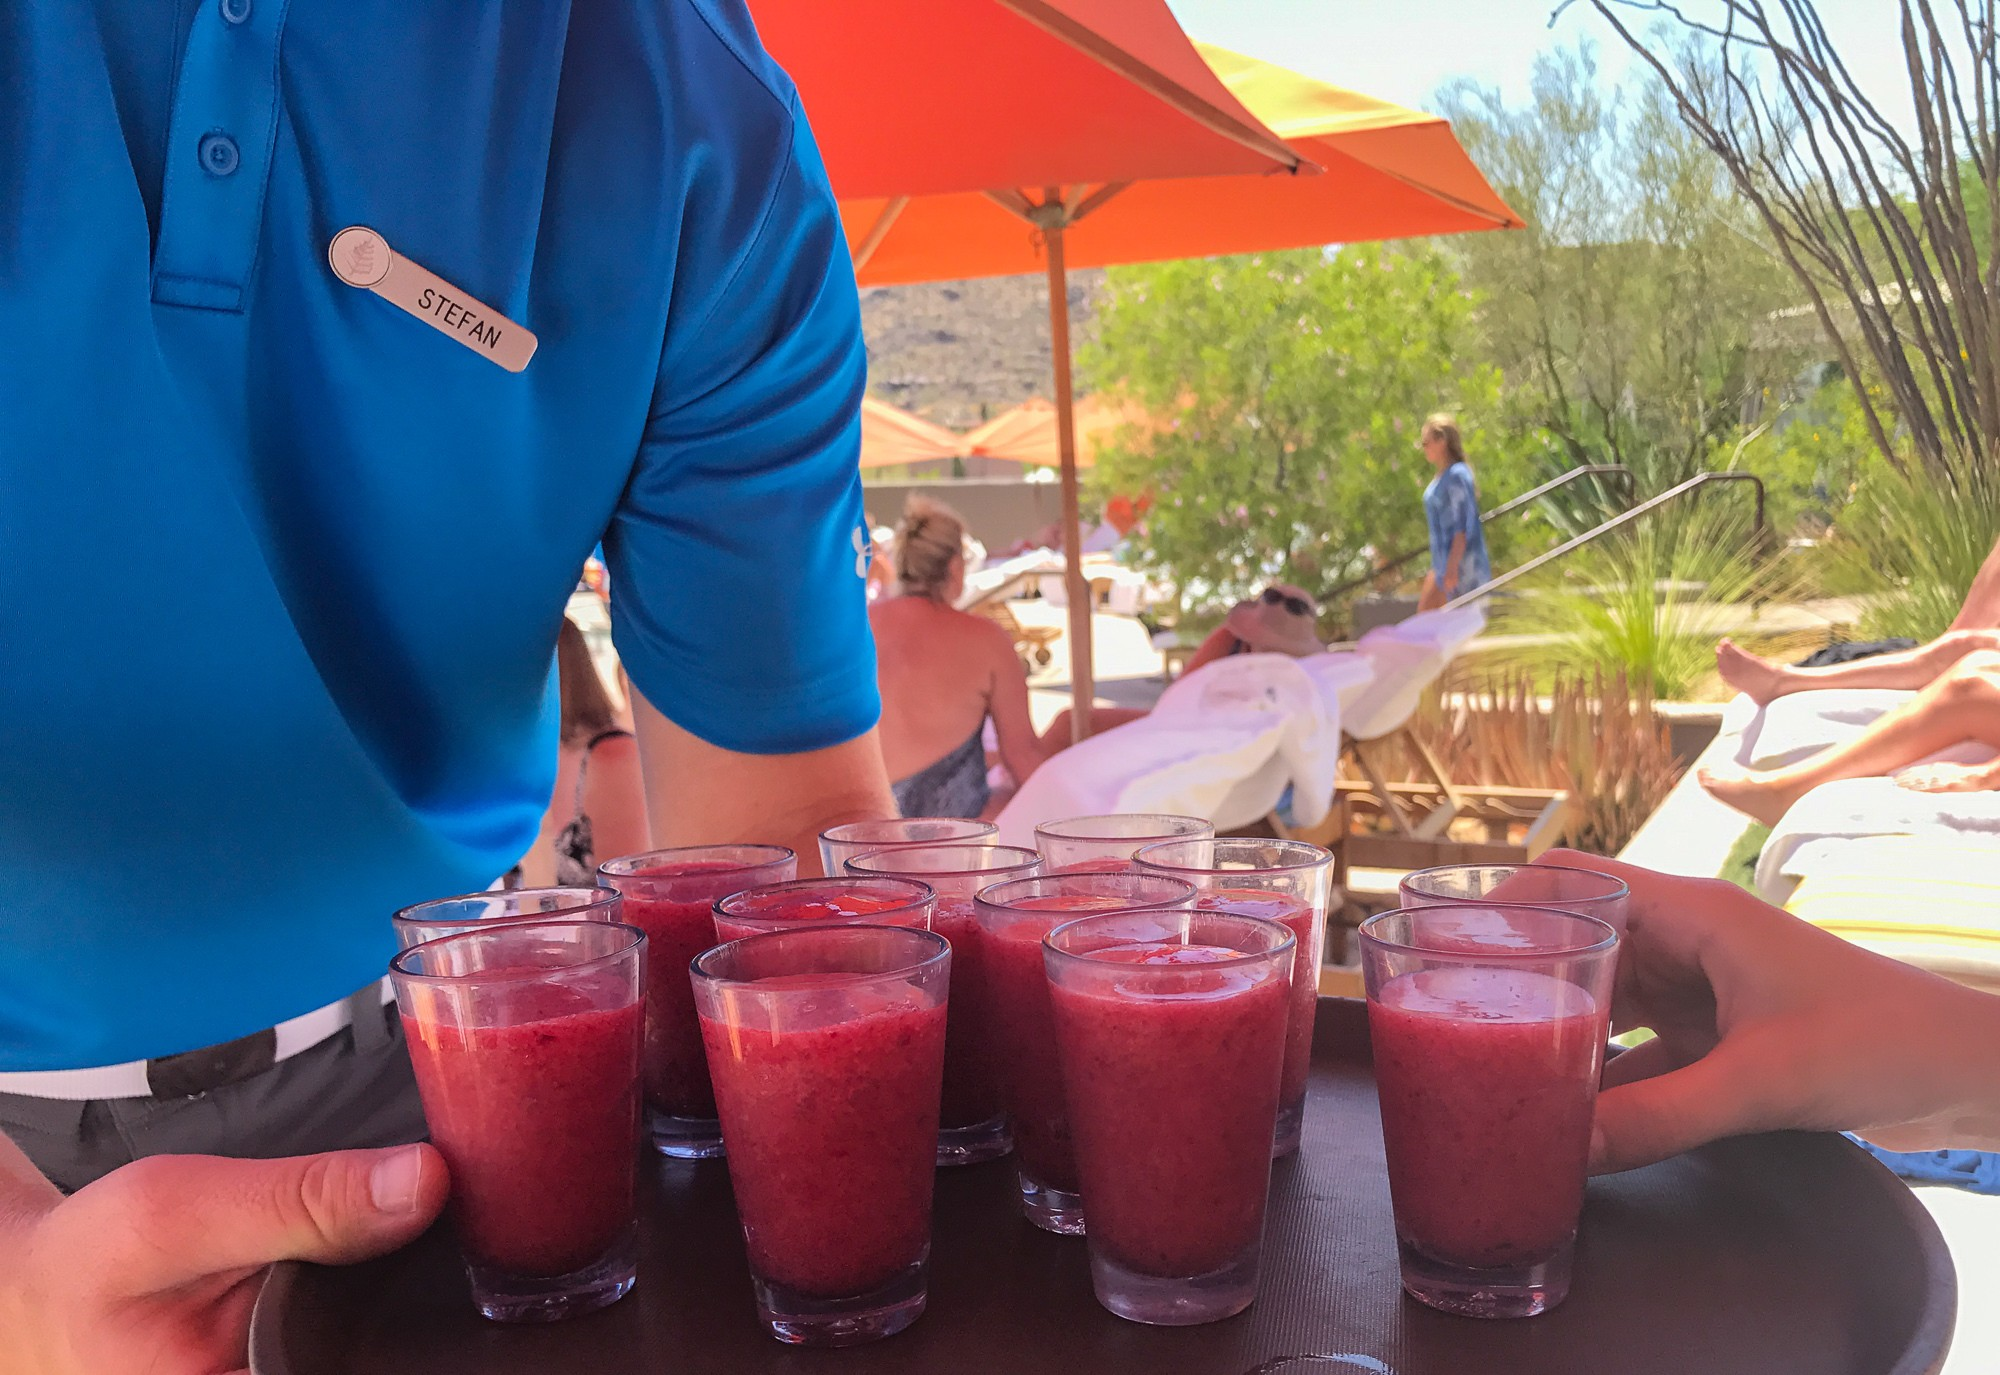 Poolside smoothies at Four Seasons Scottsdale